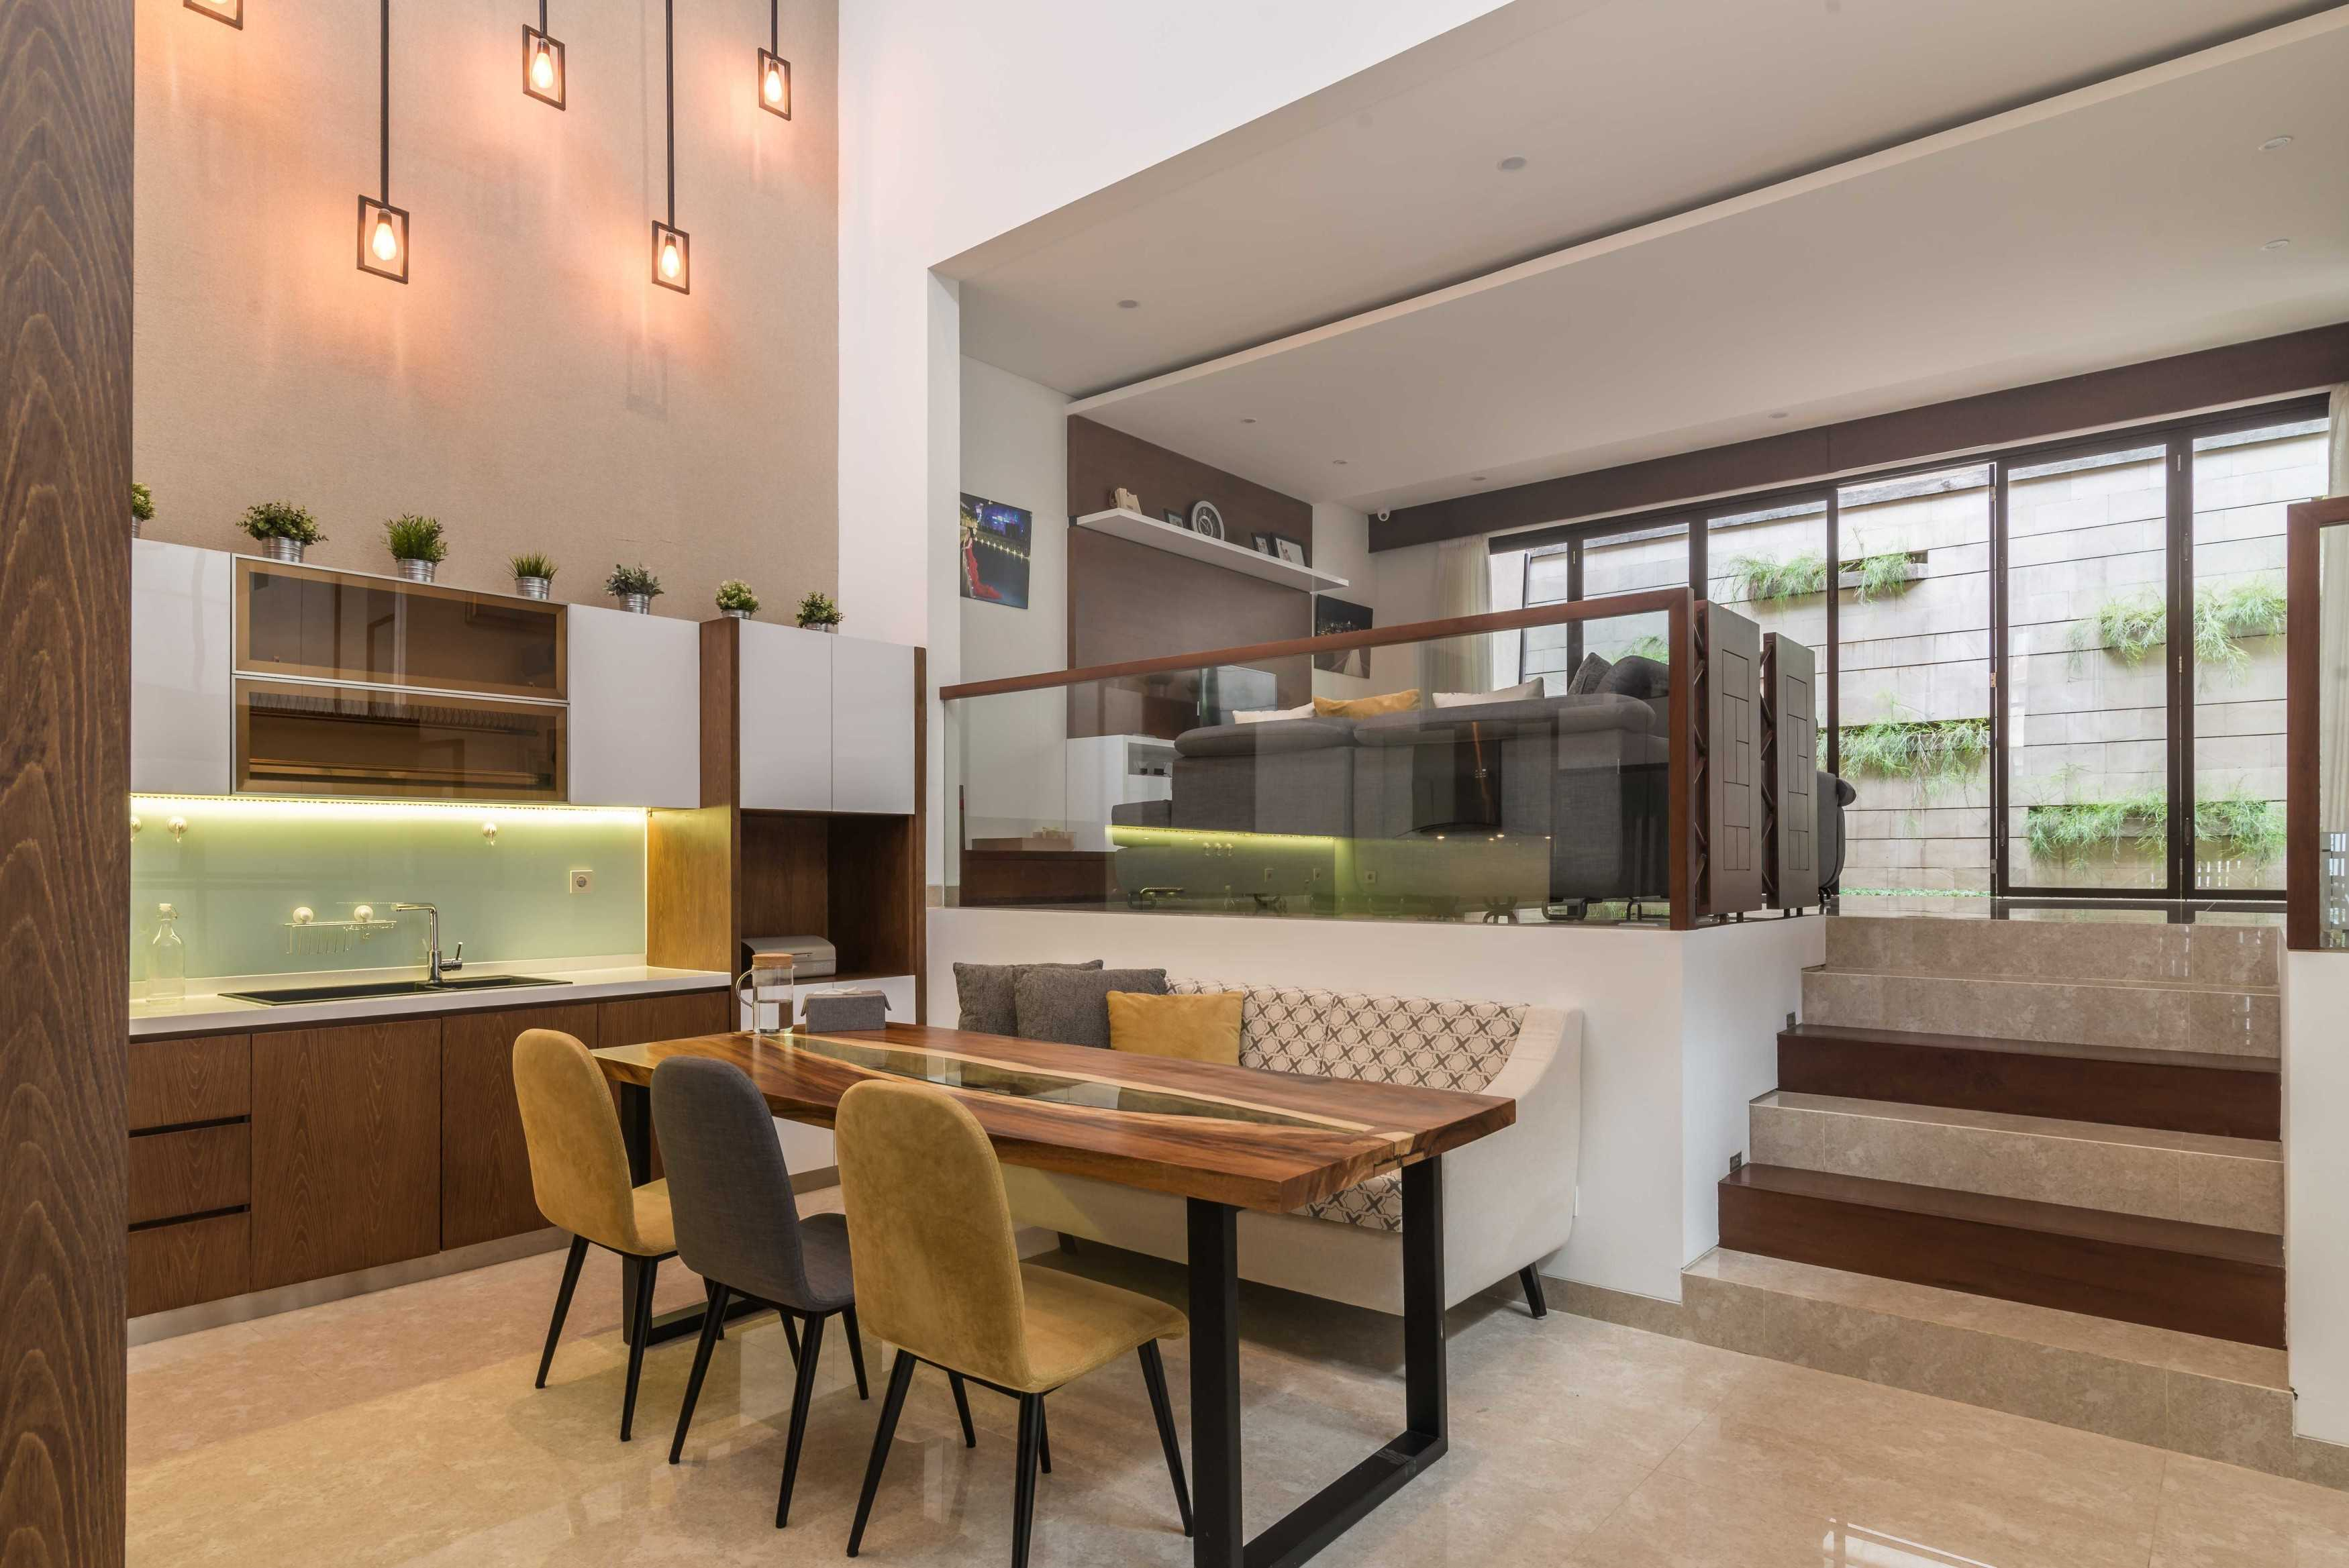 Archid Design&build Dast Residence Bandung, Kota Bandung, Jawa Barat, Indonesia Bandung, Kota Bandung, Jawa Barat, Indonesia Dining And Kitchen Area   49041